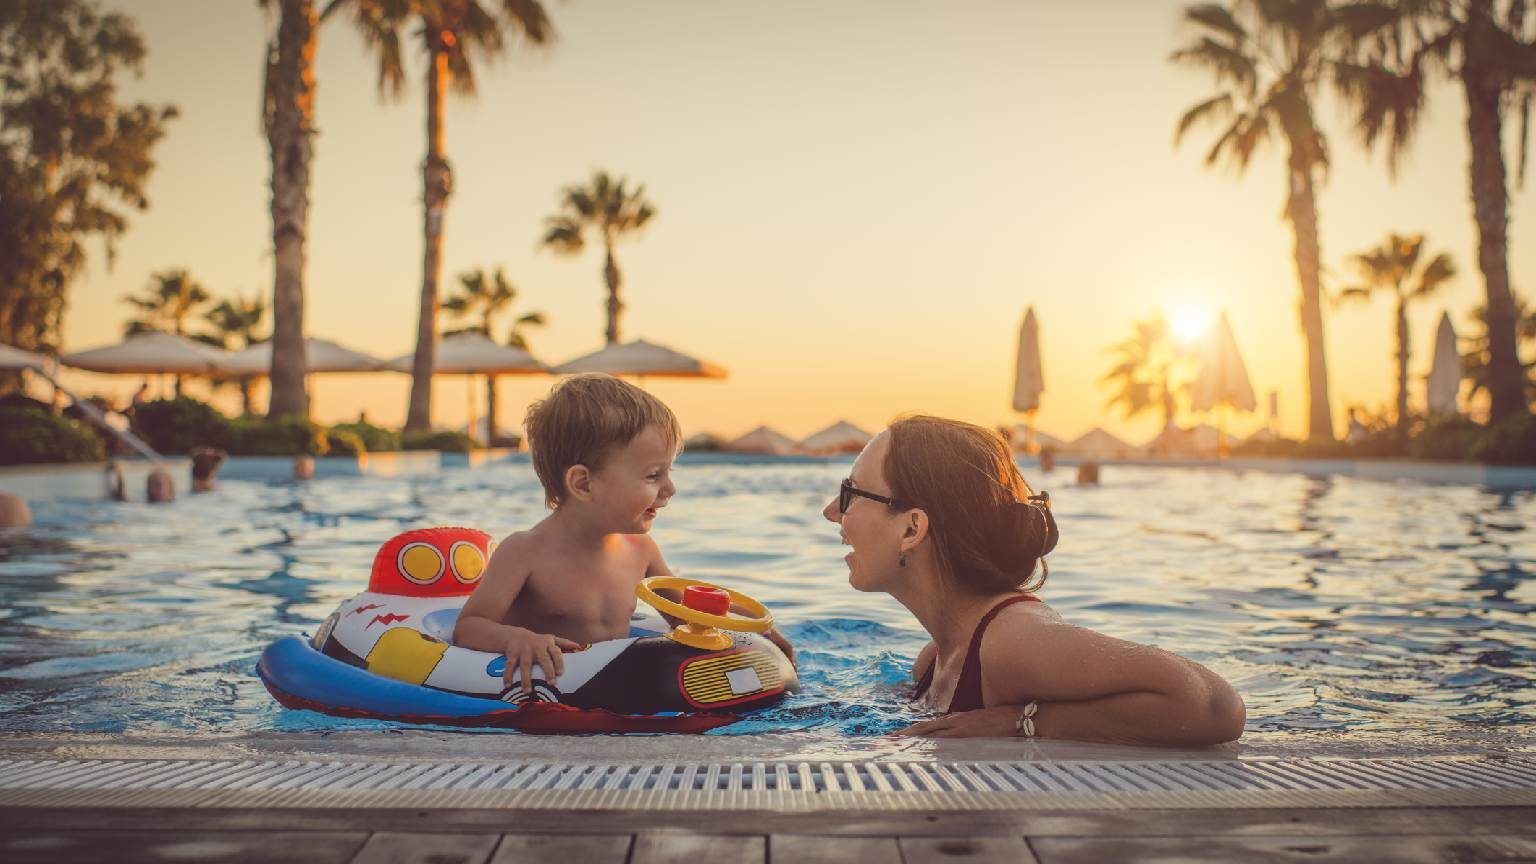 Woman playing with her son having fun at hotel pool at sunset